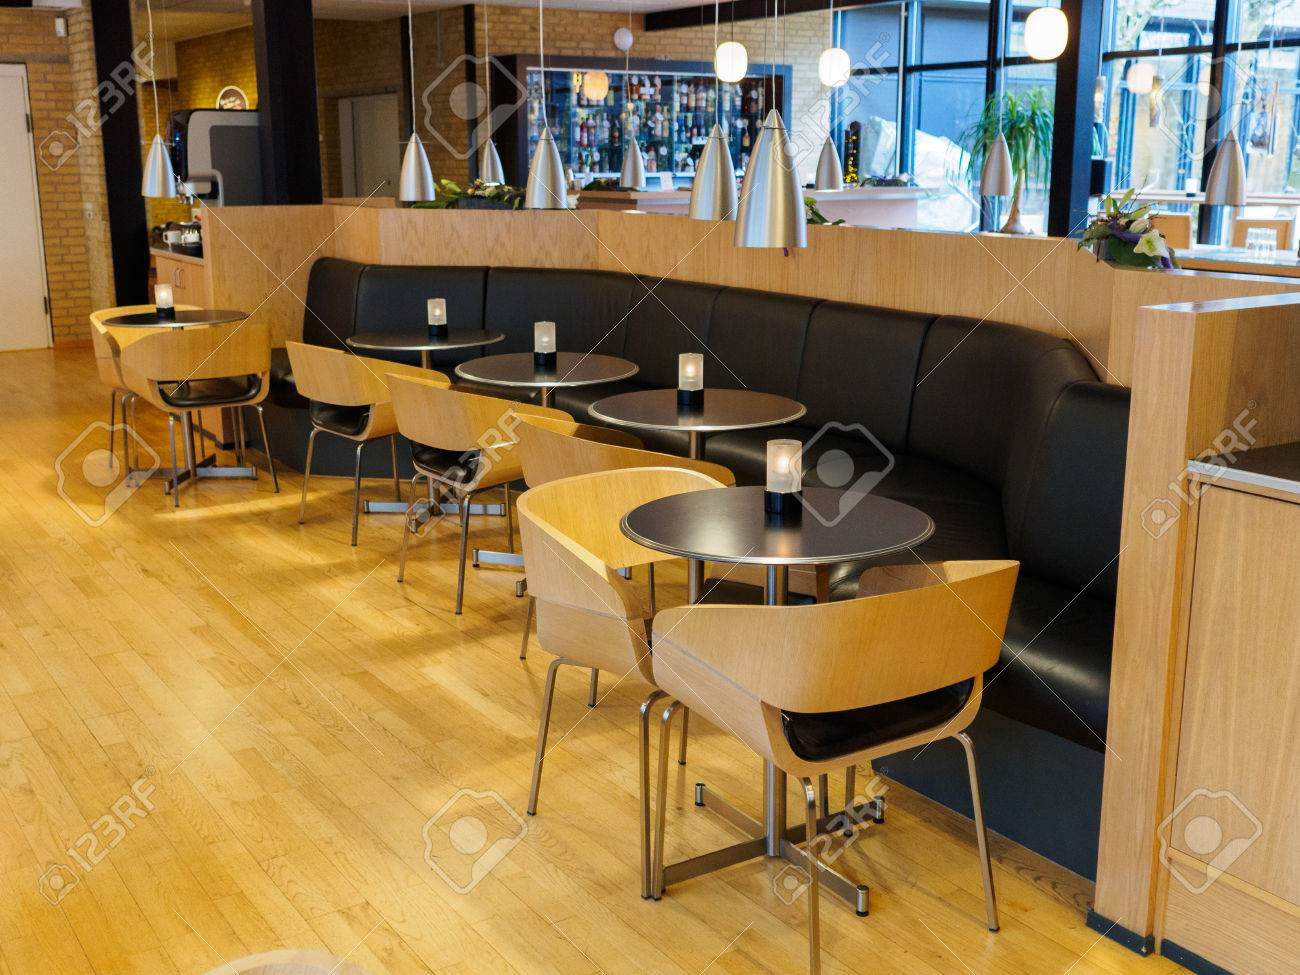 Modern Classical Design Coffee Shop Cafe Restaurant Interior Stock Photo Picture And Royalty Free Image Image 75036280